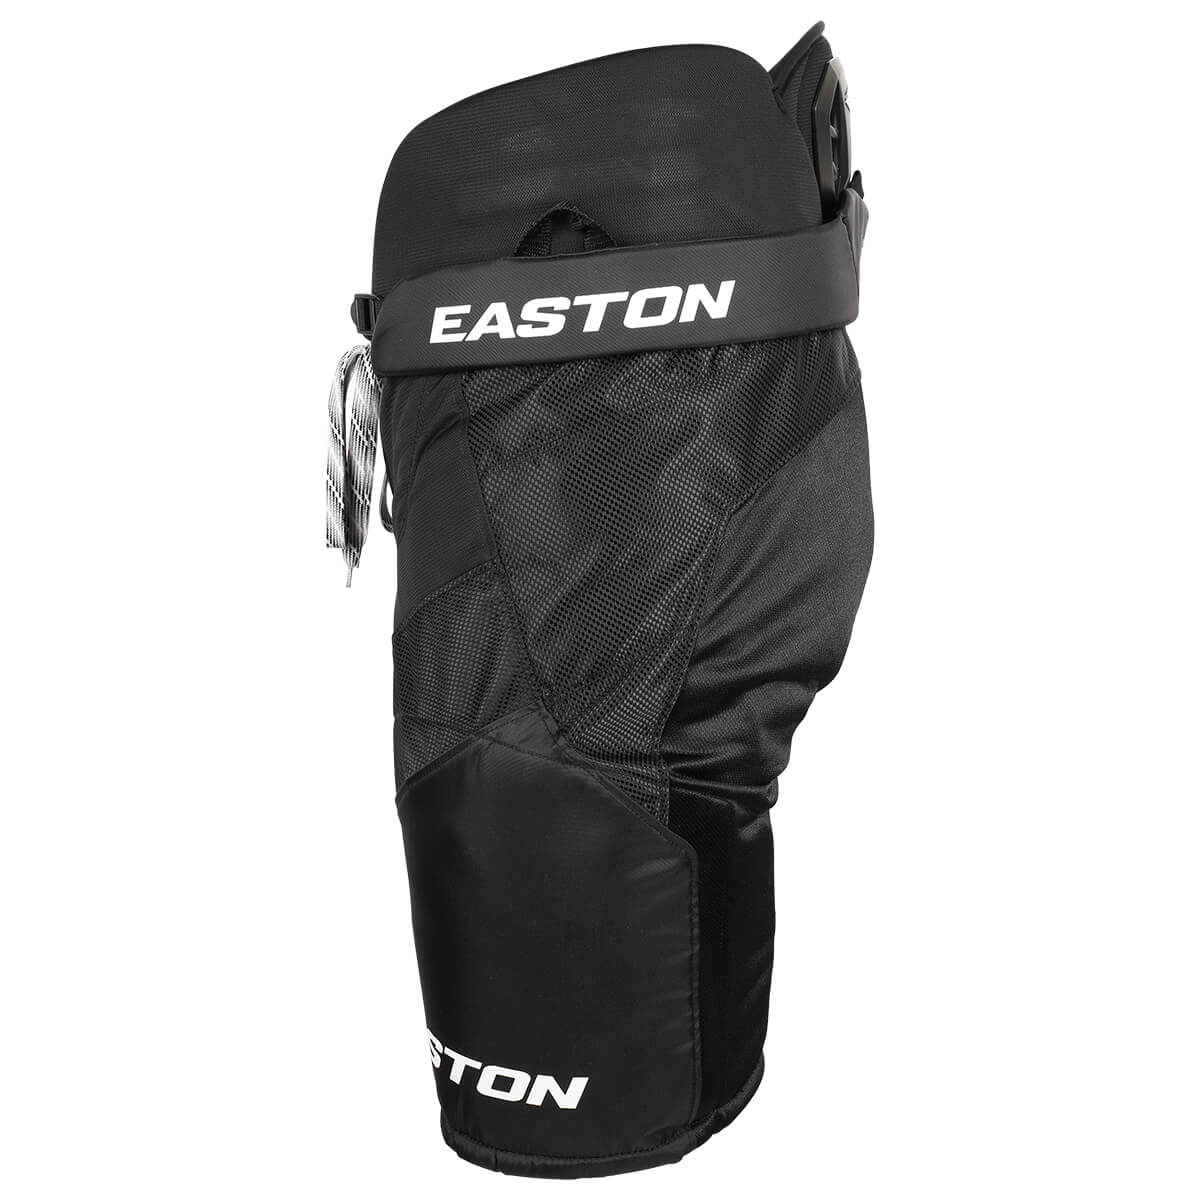 Фото 3: ТРУСЫ EASTON STEALTH C5.0 JR 15